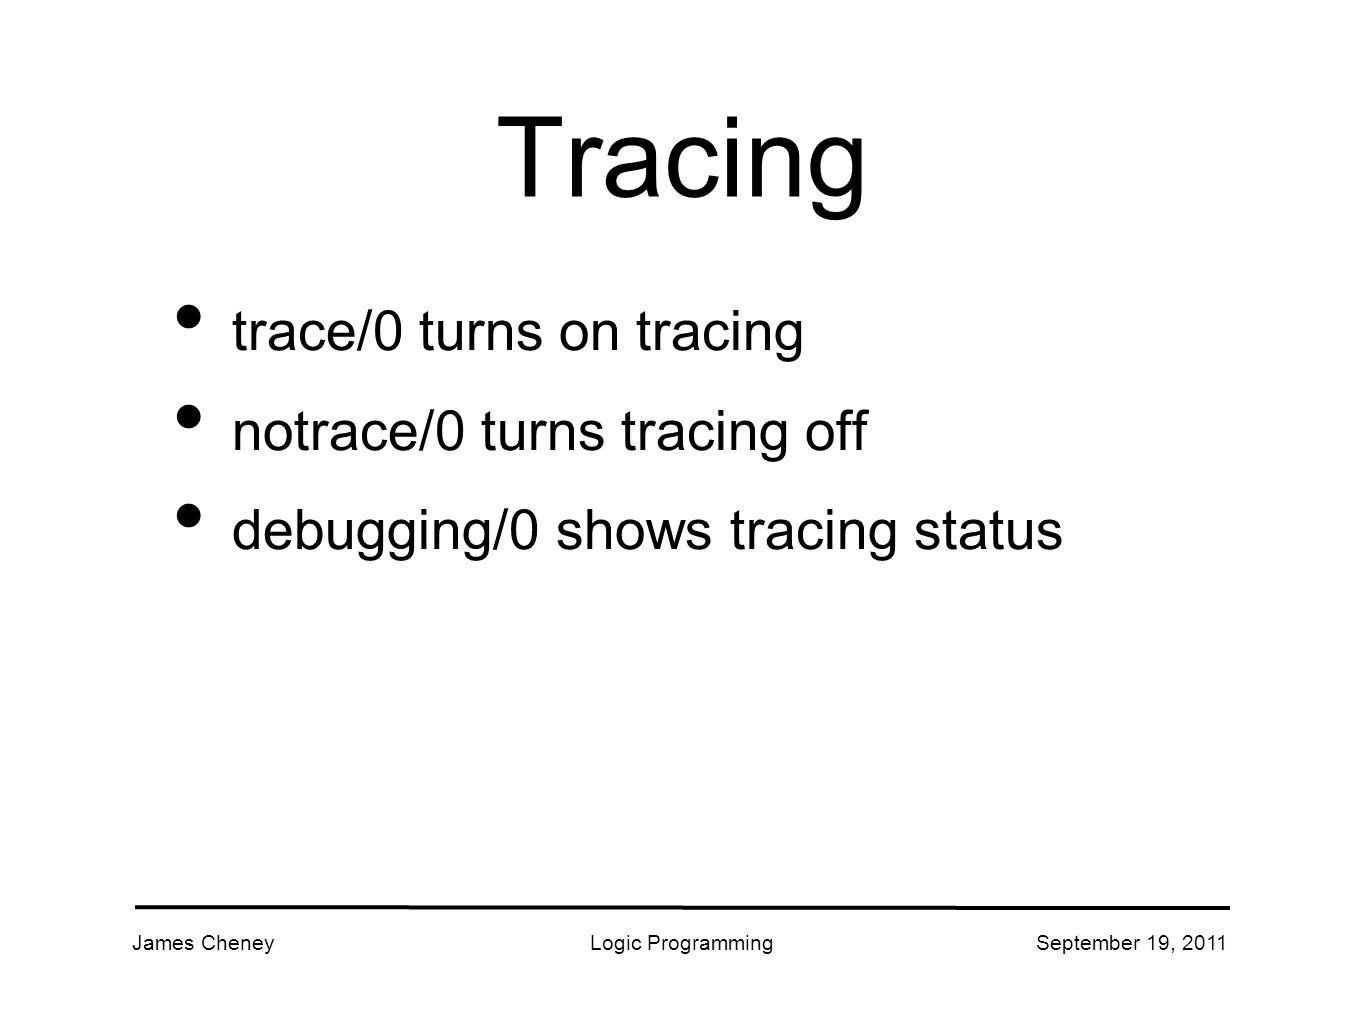 James CheneyLogic ProgrammingSeptember 19, 2011 Tracing trace/0 turns on tracing notrace/0 turns tracing off debugging/0 shows tracing status